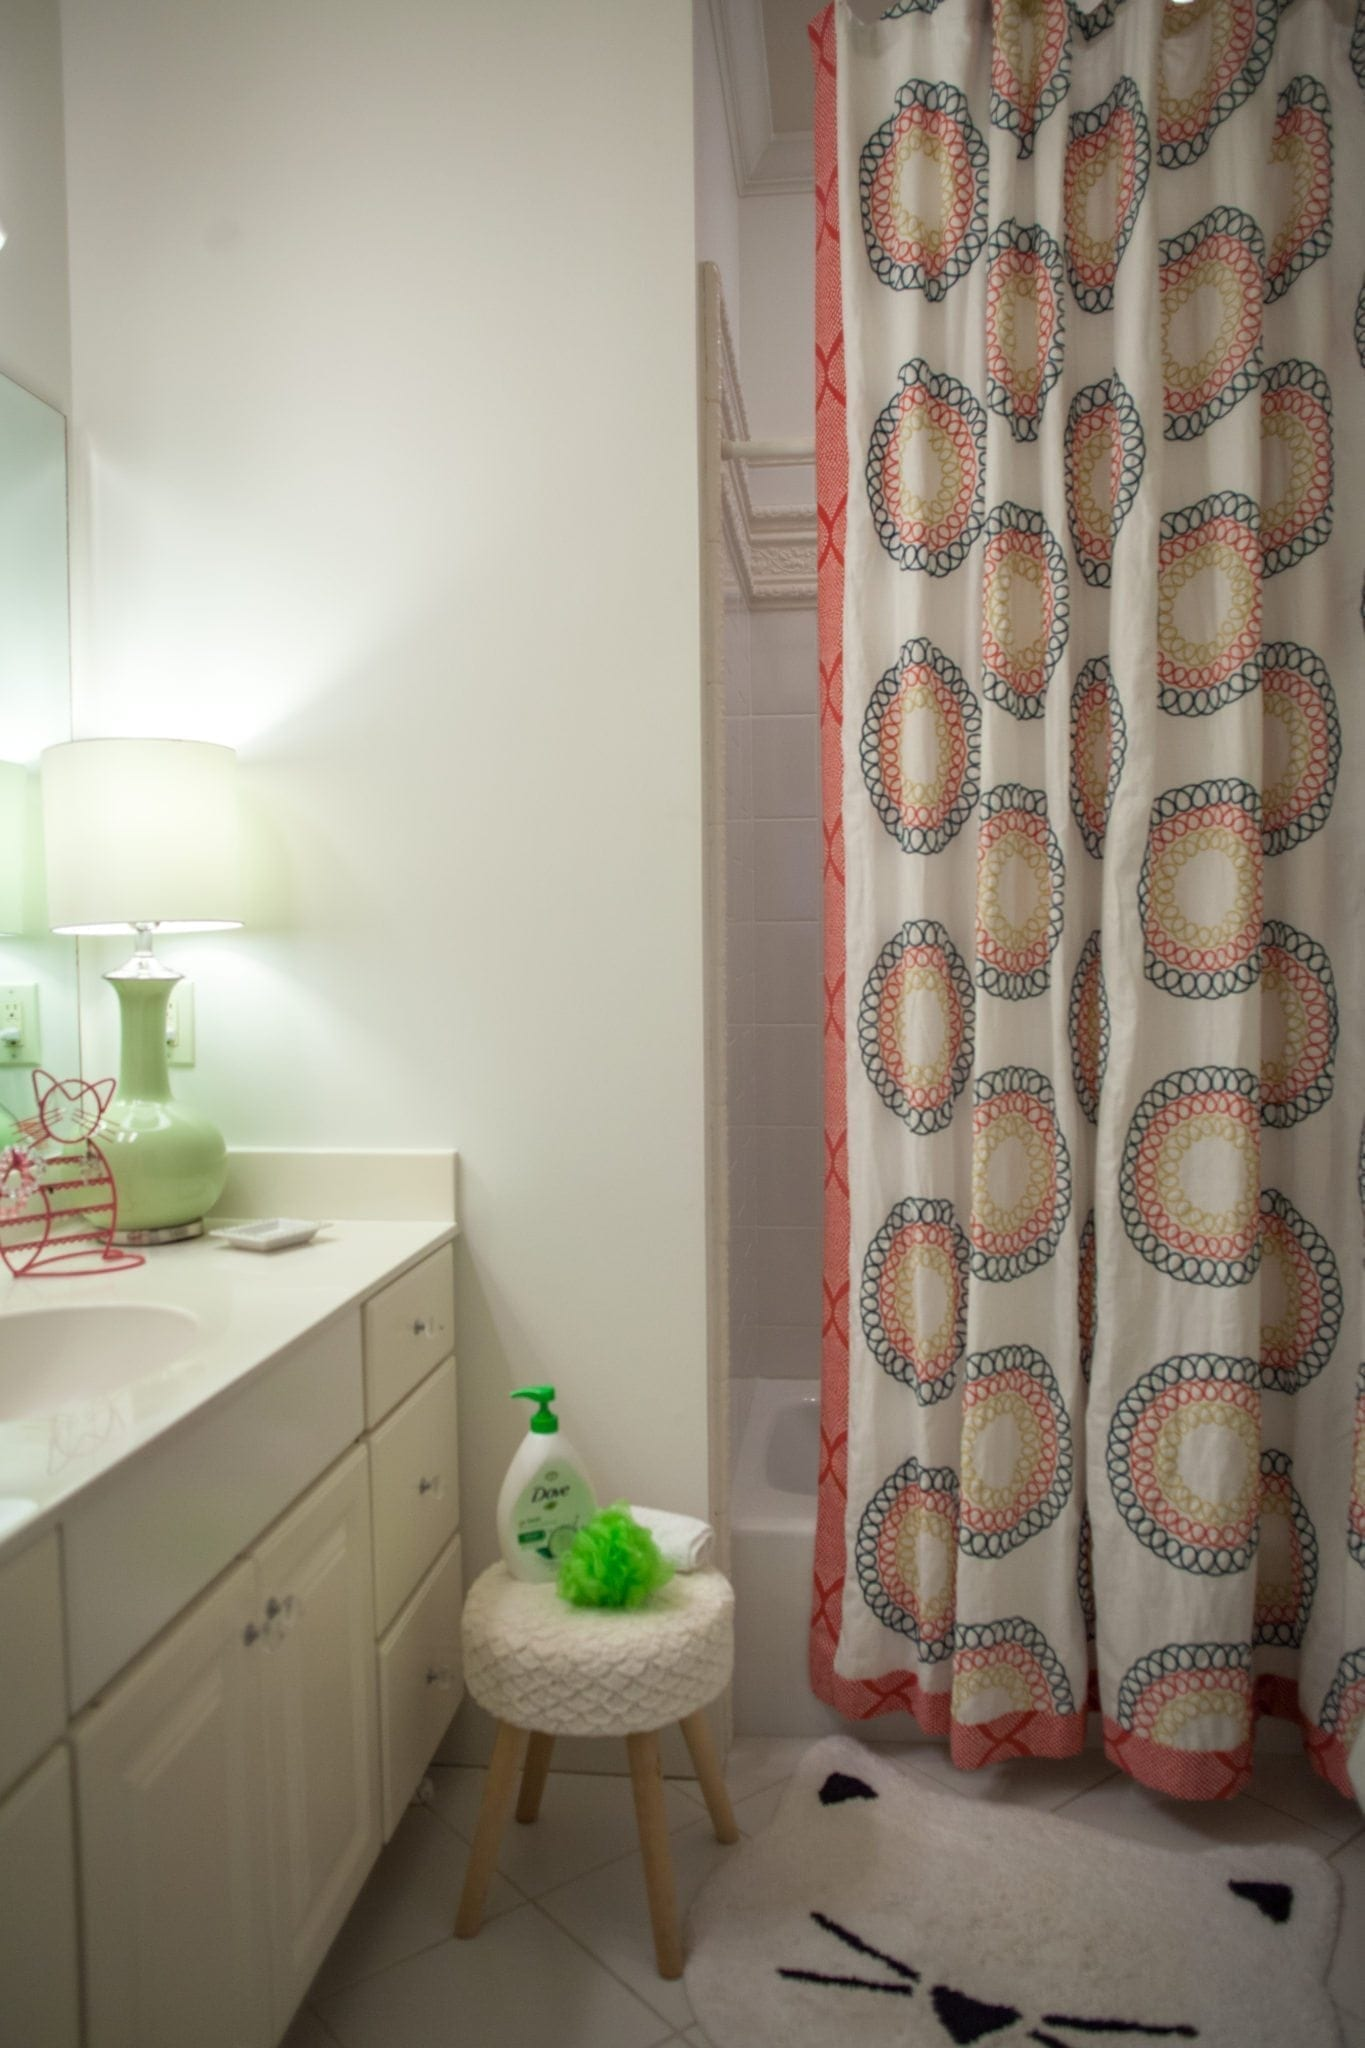 Custom size shower curtains for bathrooms. Calico Corners made this fabulous shower curtain for a girls bathroom using MadCap Cottage for Robert Allen fabric. A cute white kitten bathmat from Pottery Barn is also used.